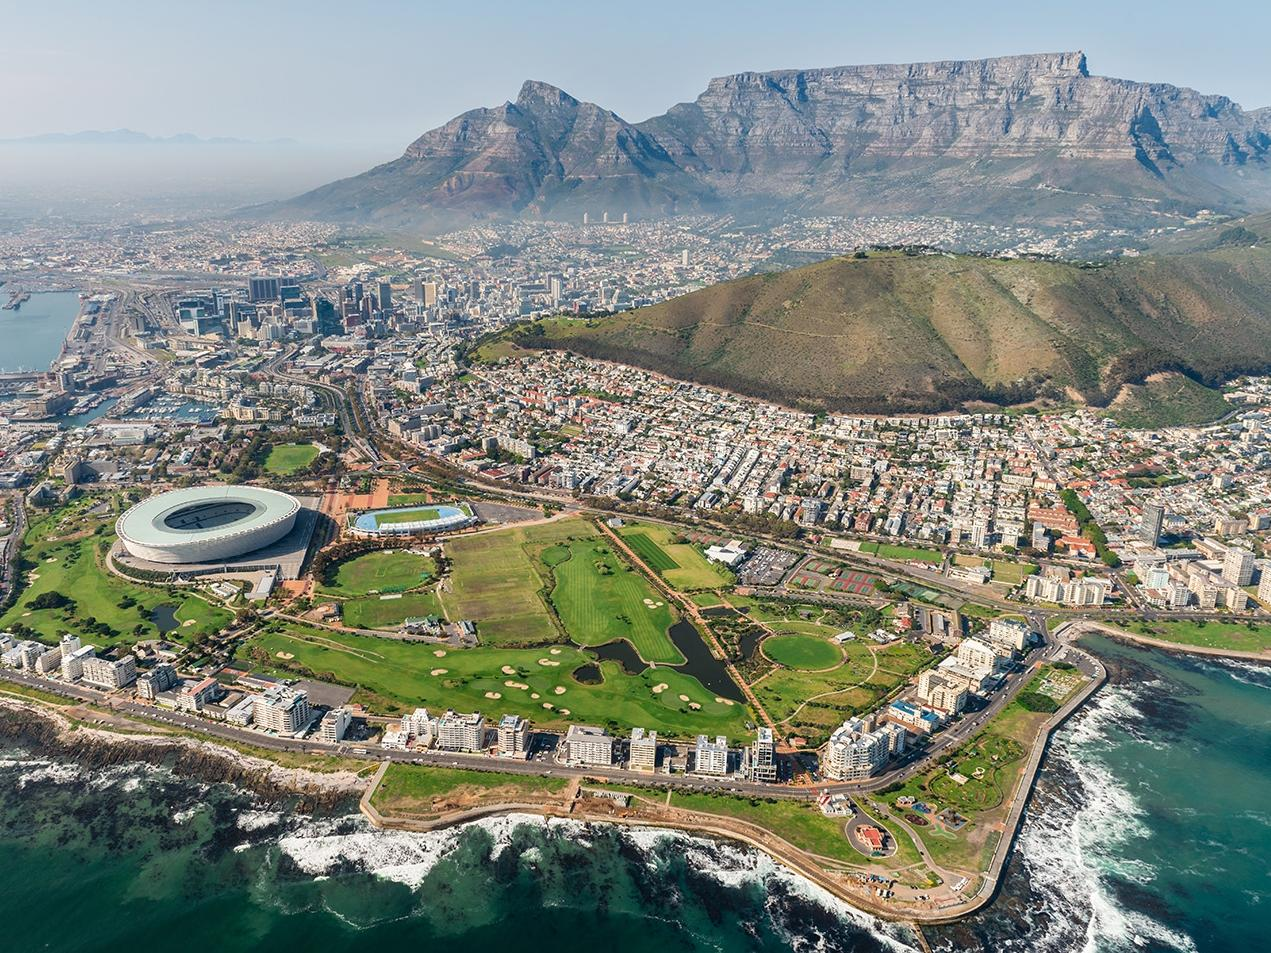 Cape Town, South Africa (aerial view) shot from a helicopter